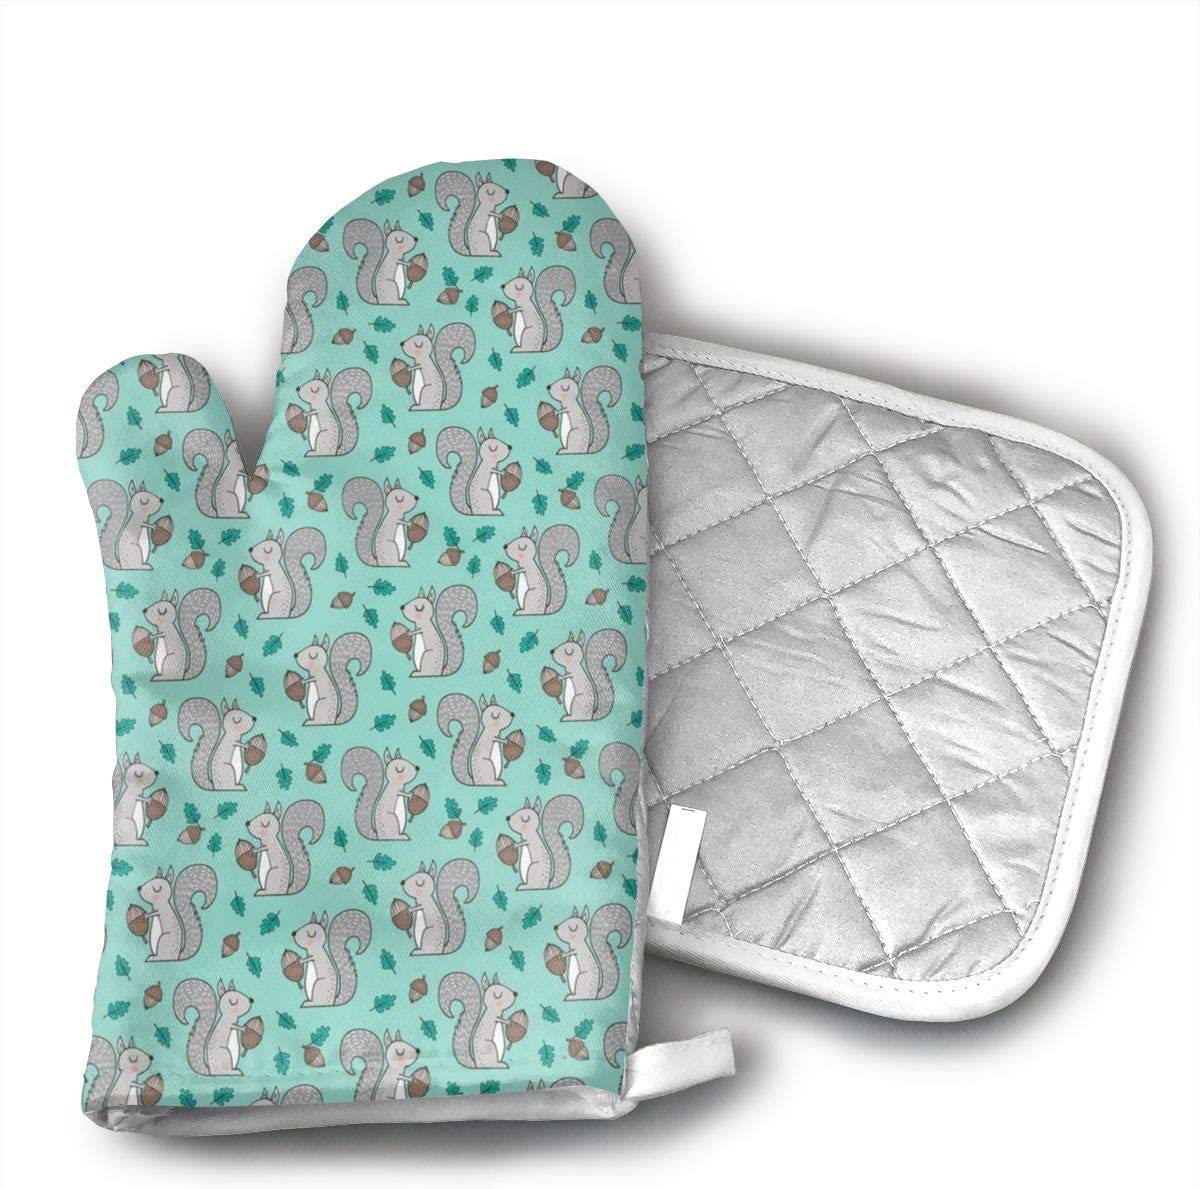 QEDGC Forest Squirrel with Leaves Acorn Autumn Fall On Mint Green Oven Mitts with Quilted Cotton Lining - Professional Heat Resistant Potholder Kitchen Gloves